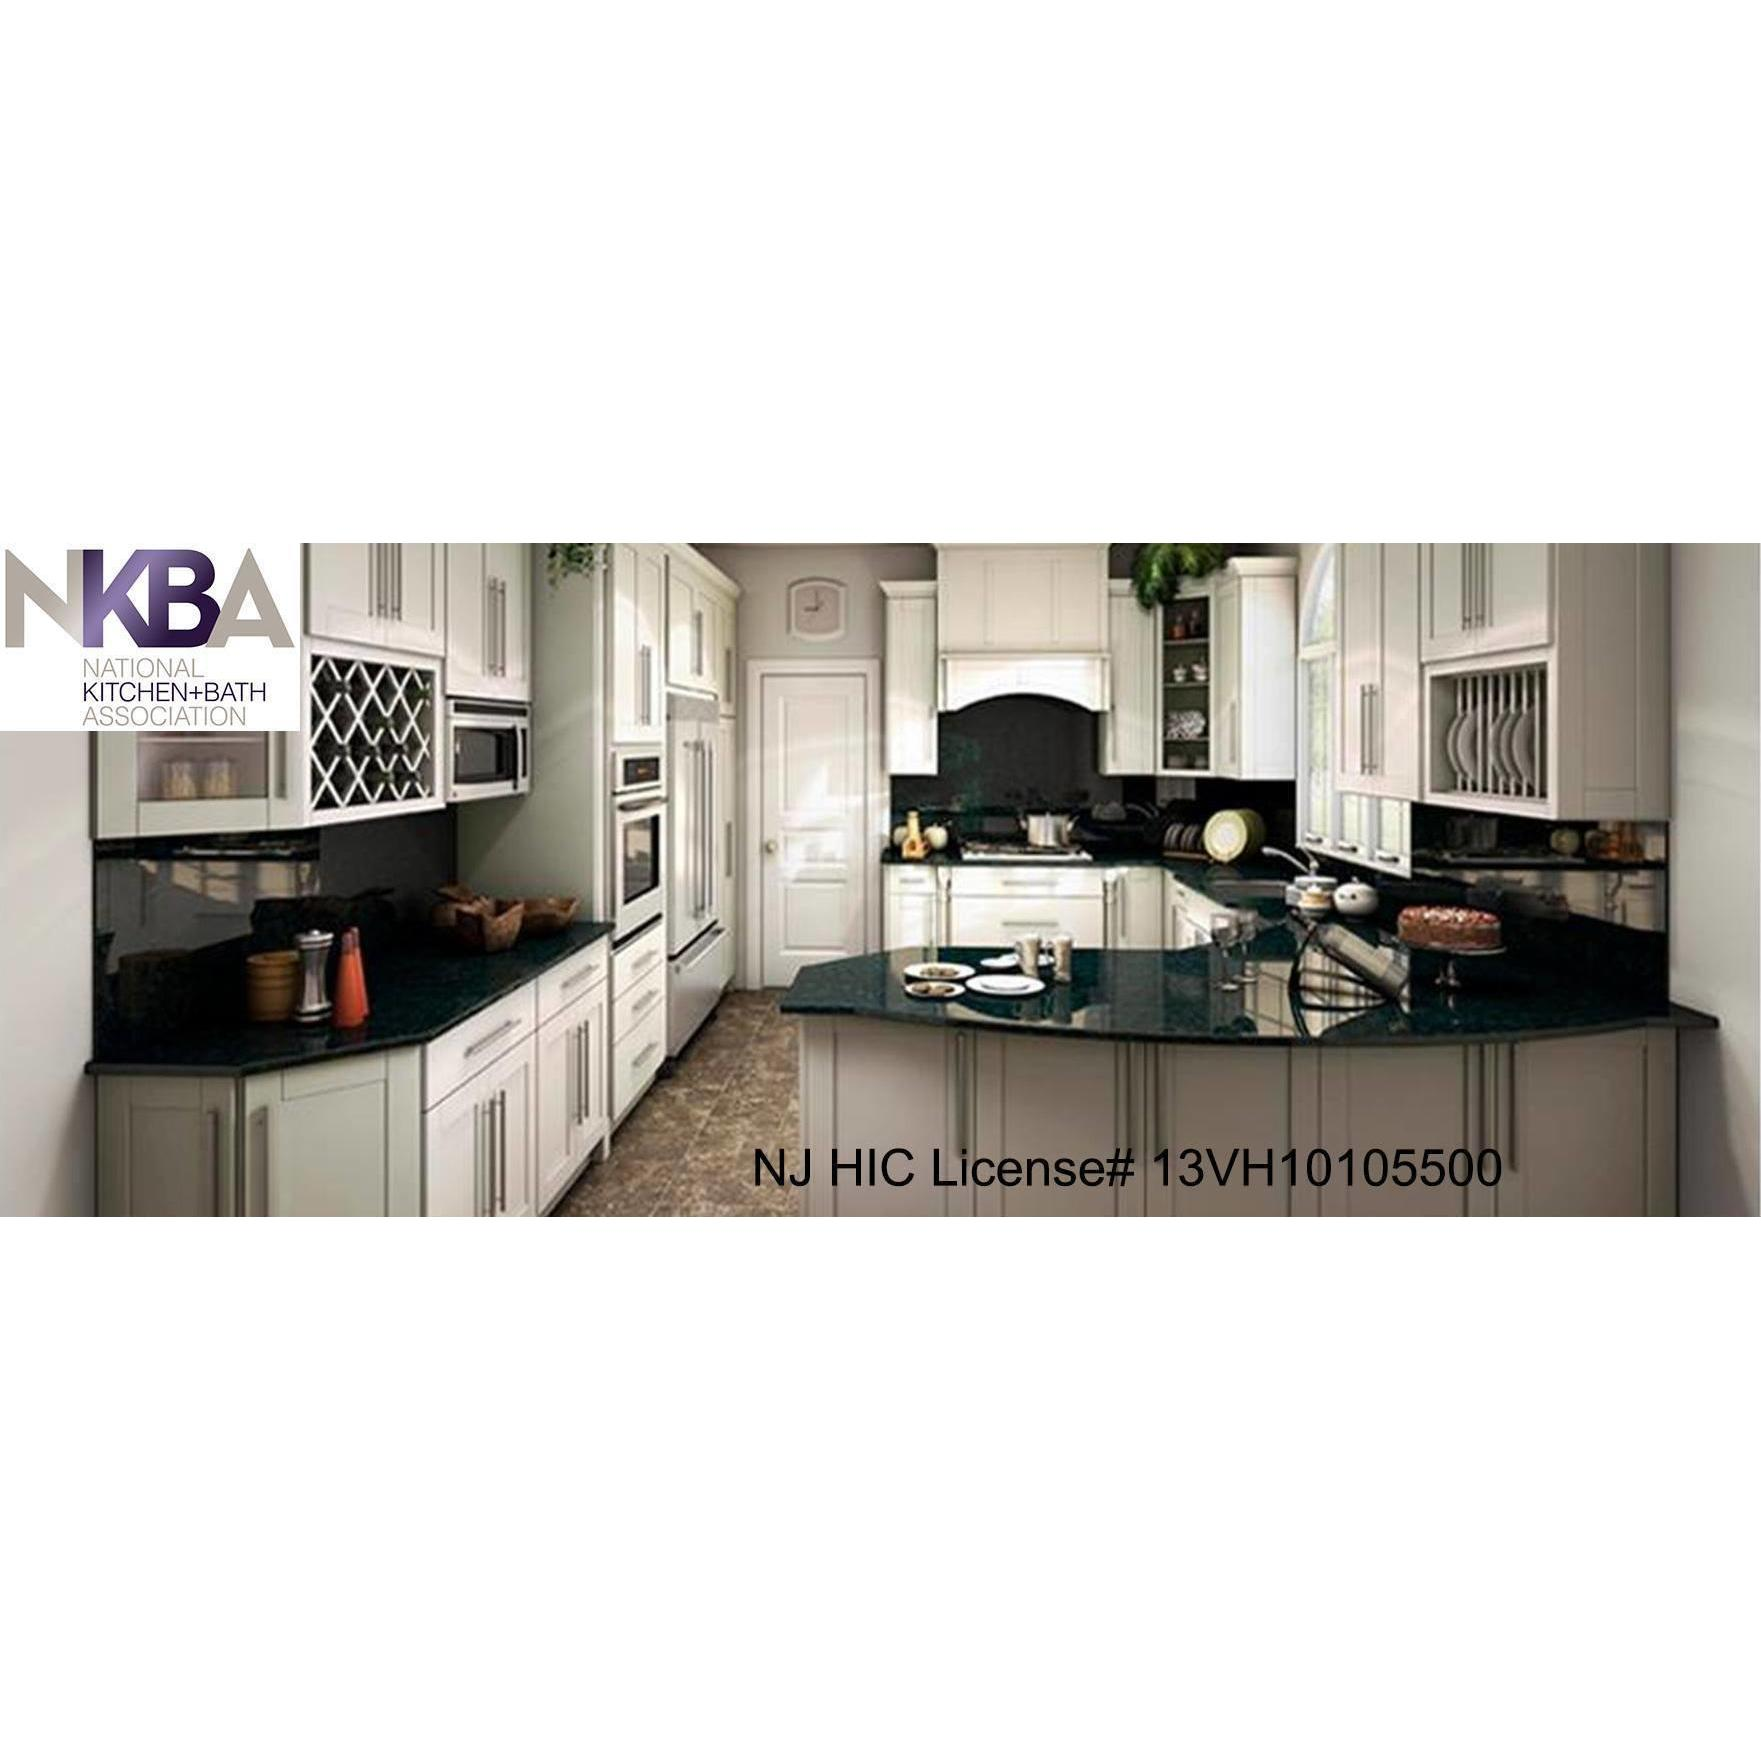 Deluxe Cabinets and Granite LLC